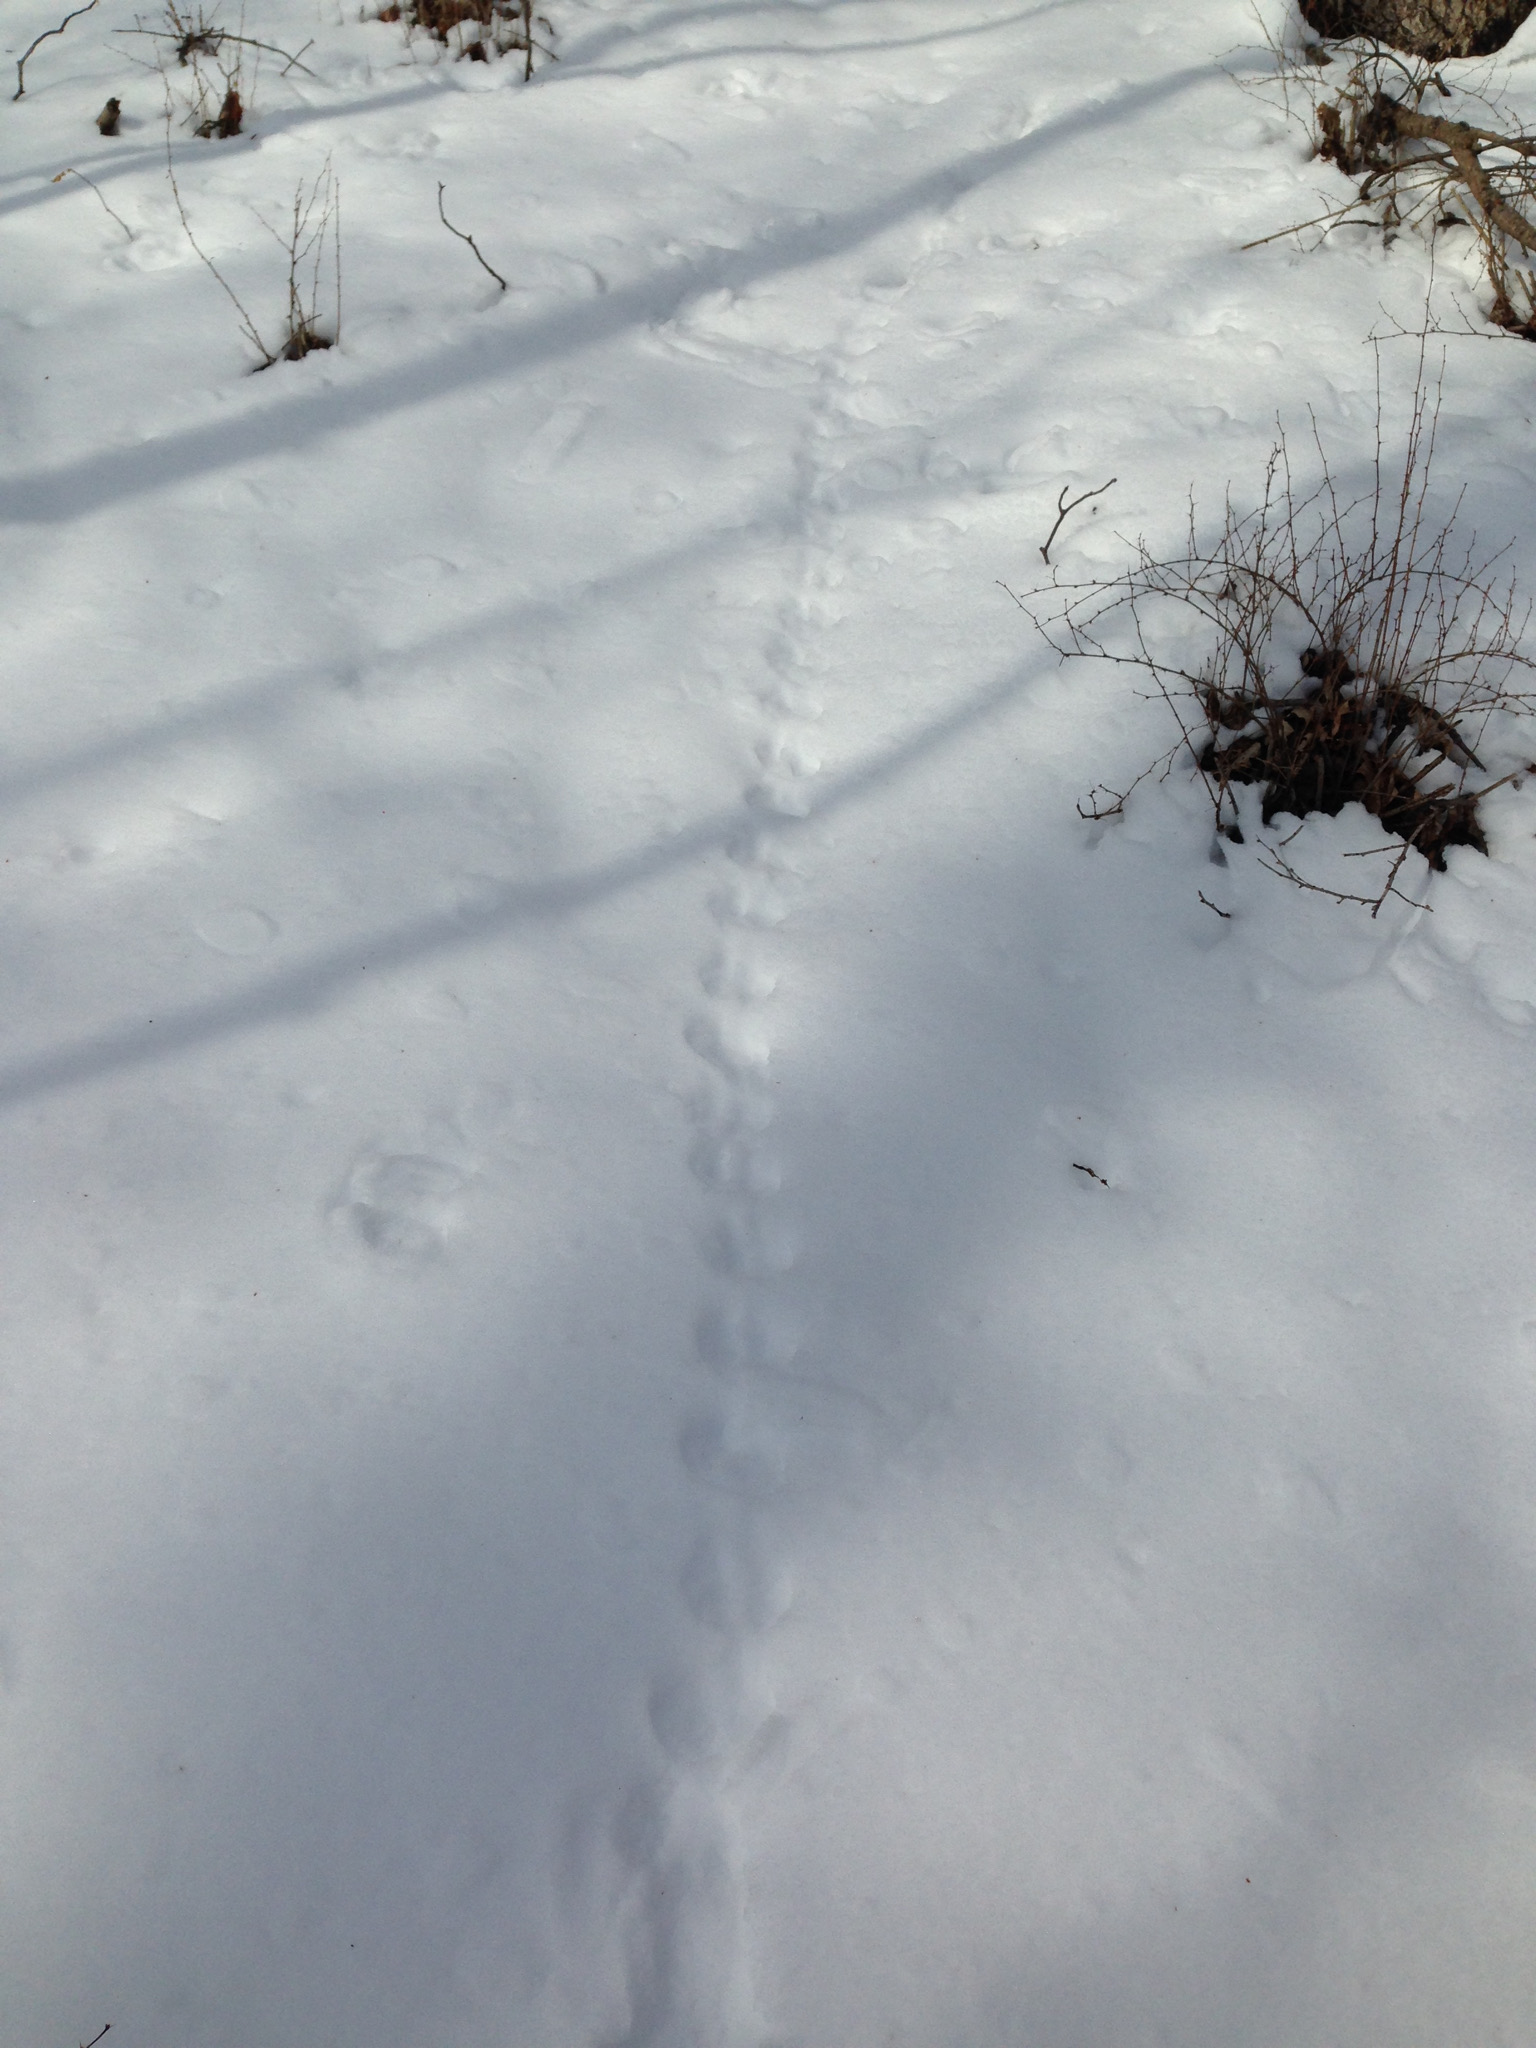 We haven't seen chipmunk tracks in deep snow here in previous years. Usually they are still in their burrows when the snow is this deep.